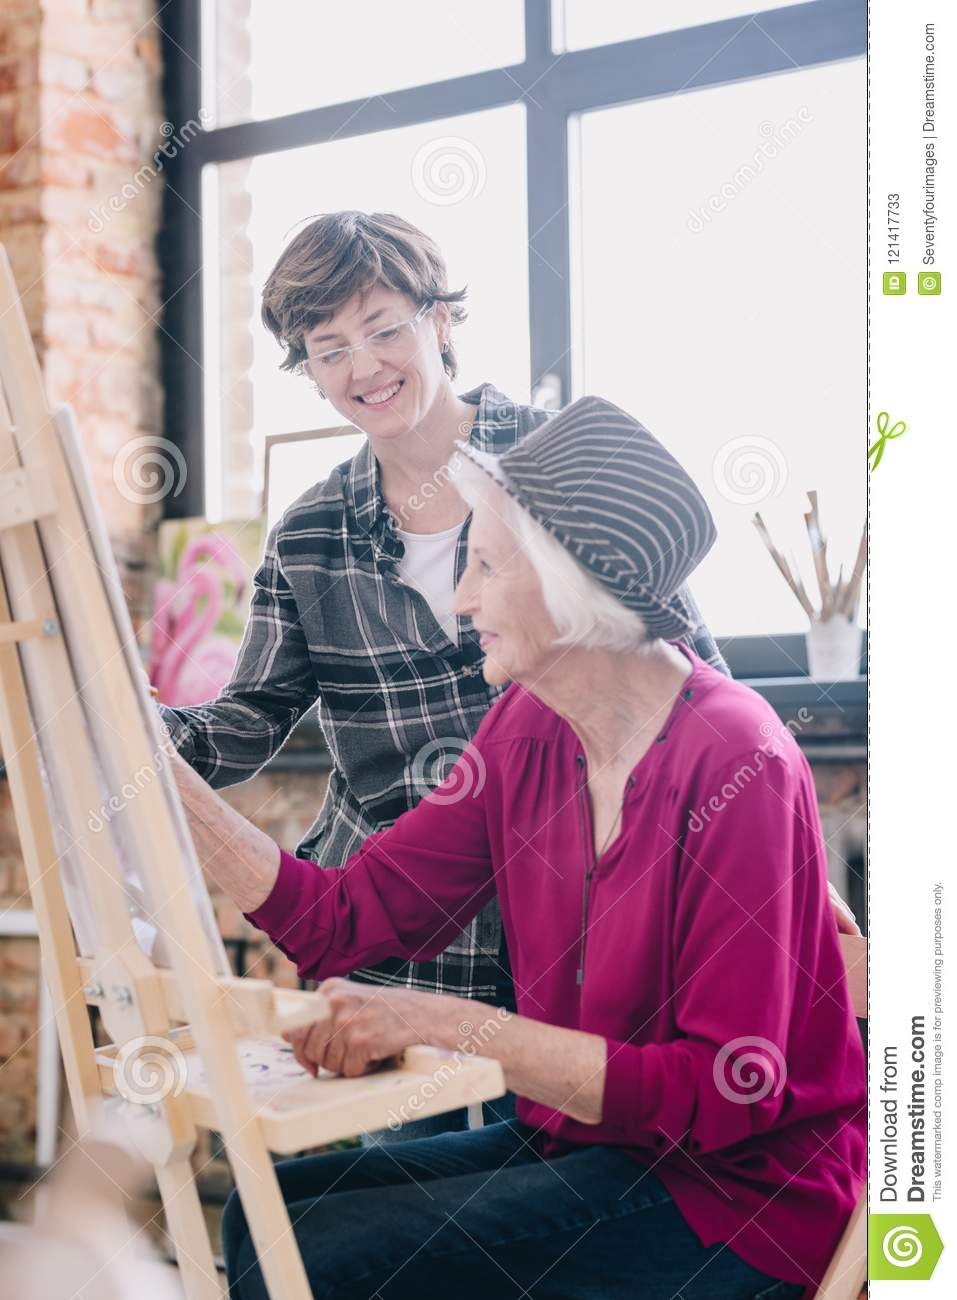 Something Women posing for art classes consider, what